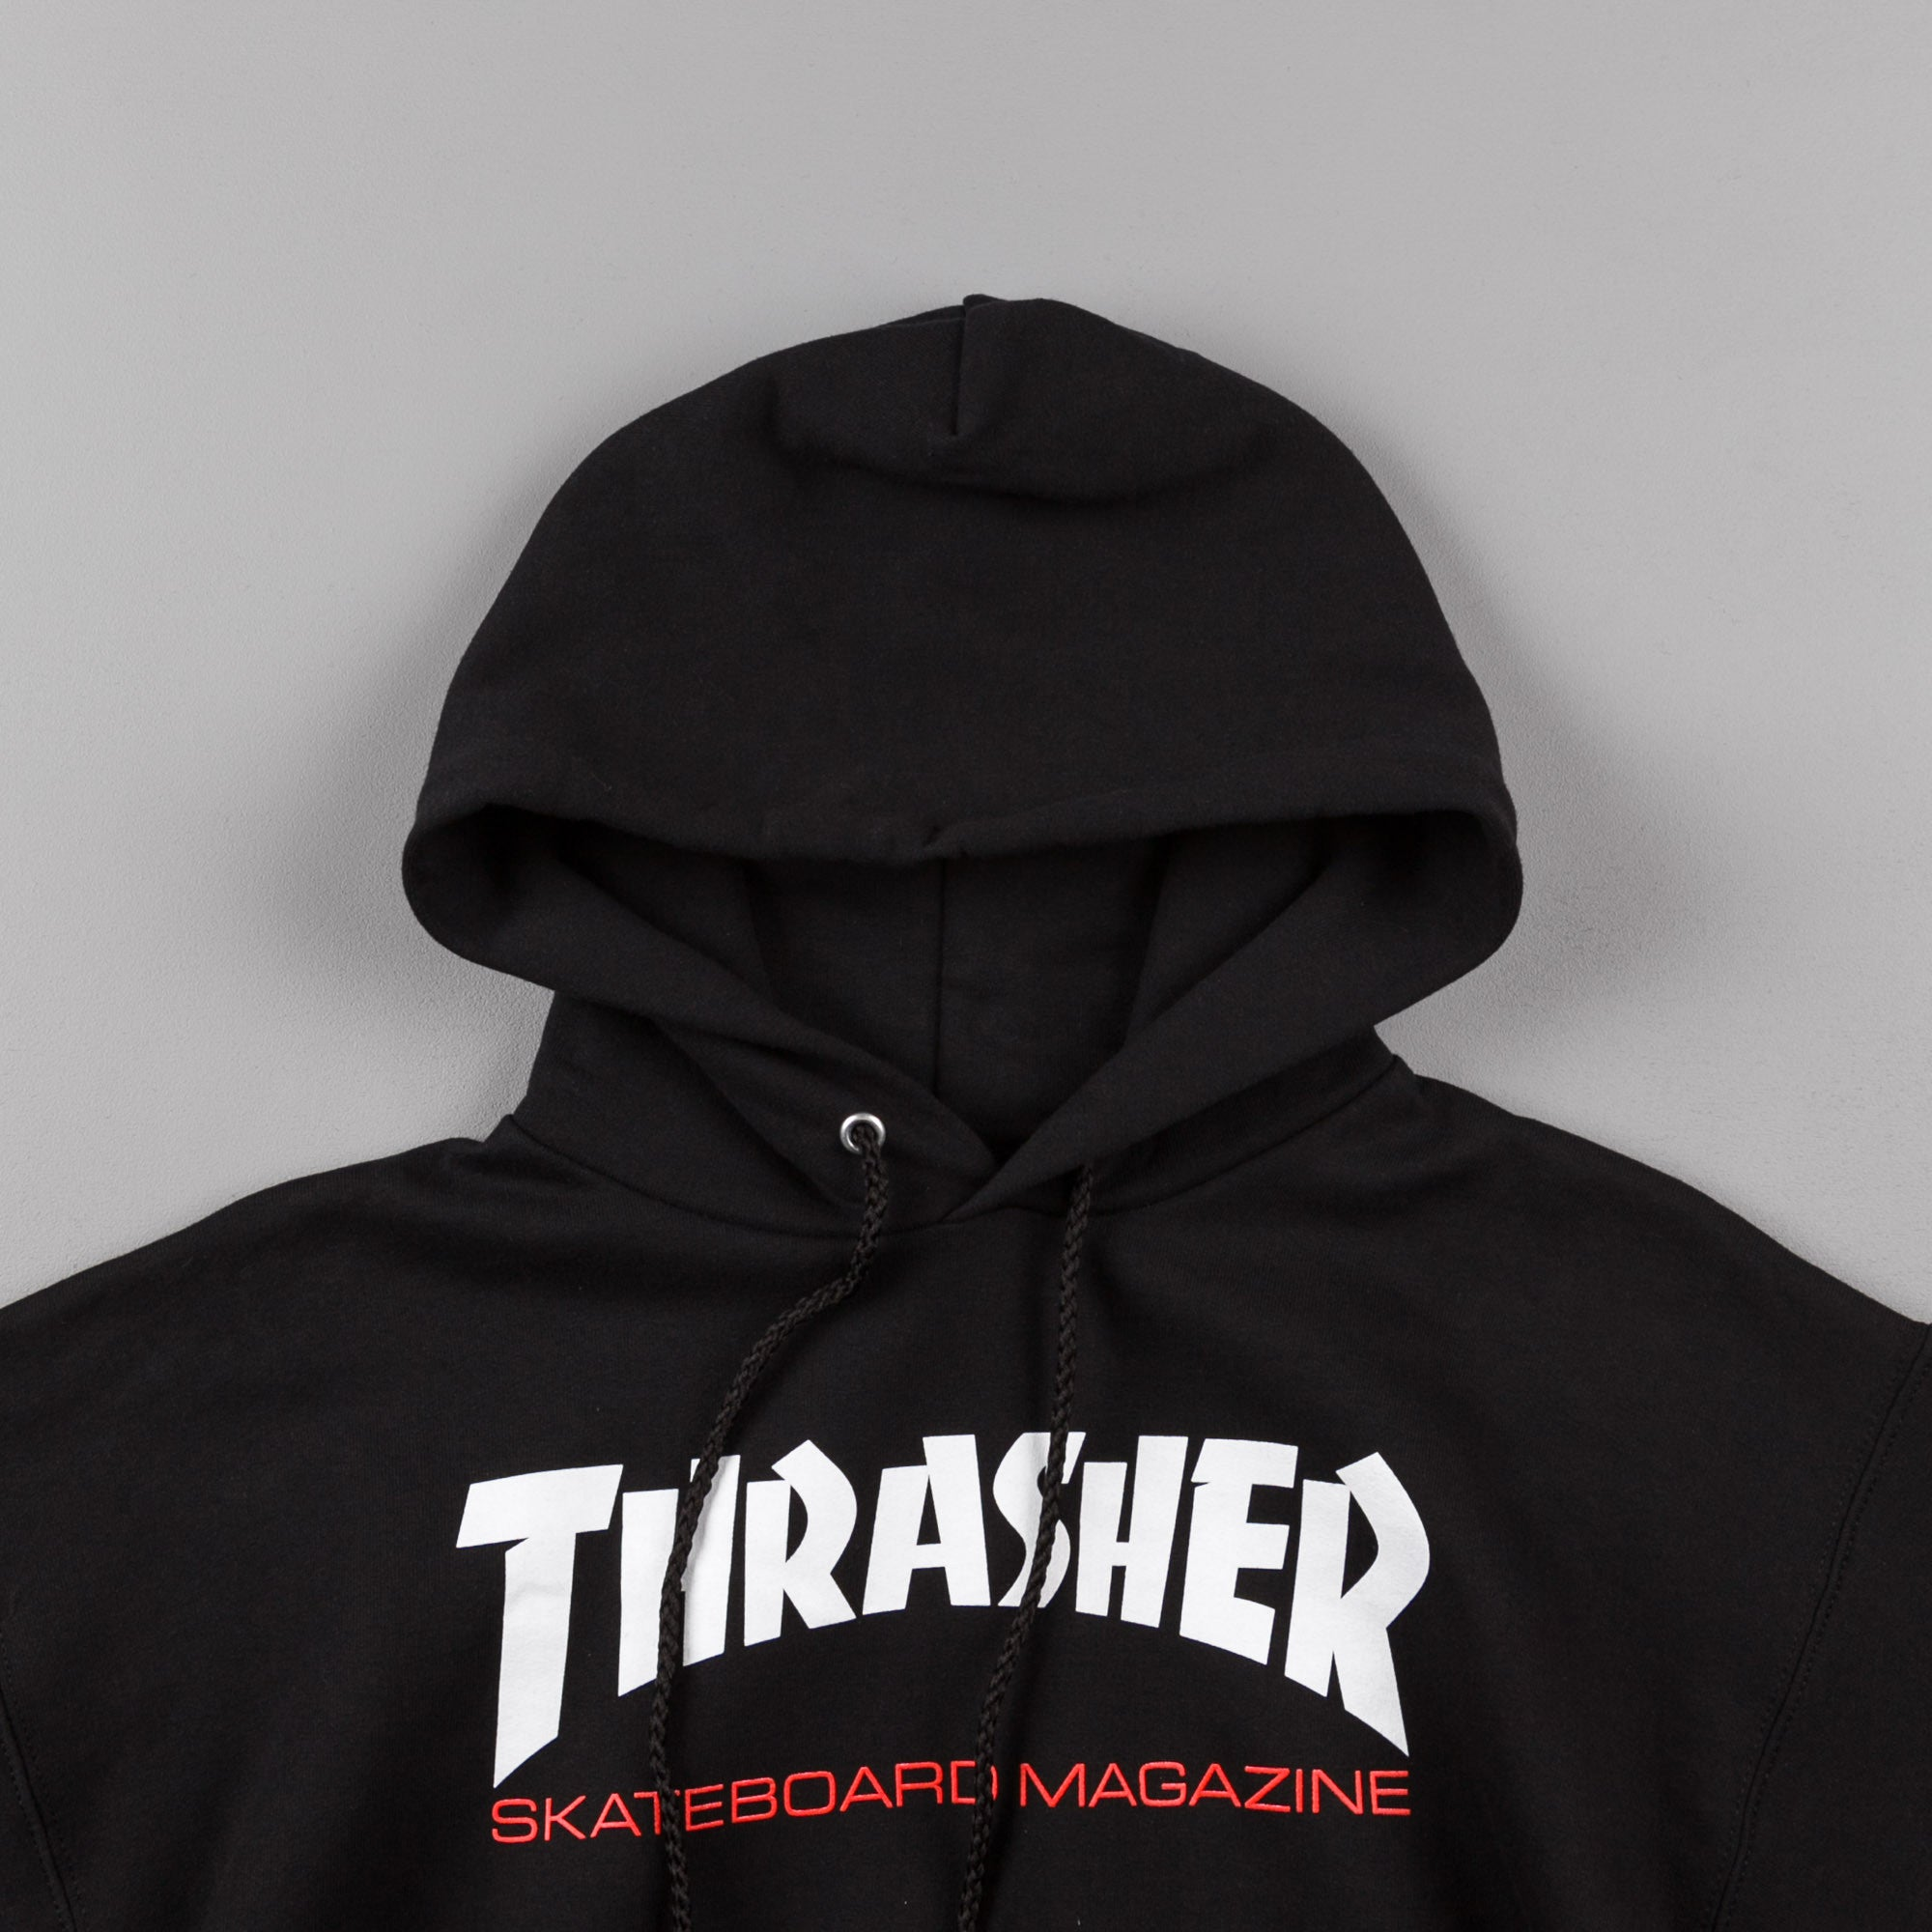 Thrasher Two Tone Skate Mag Hooded Sweatshirt - Black